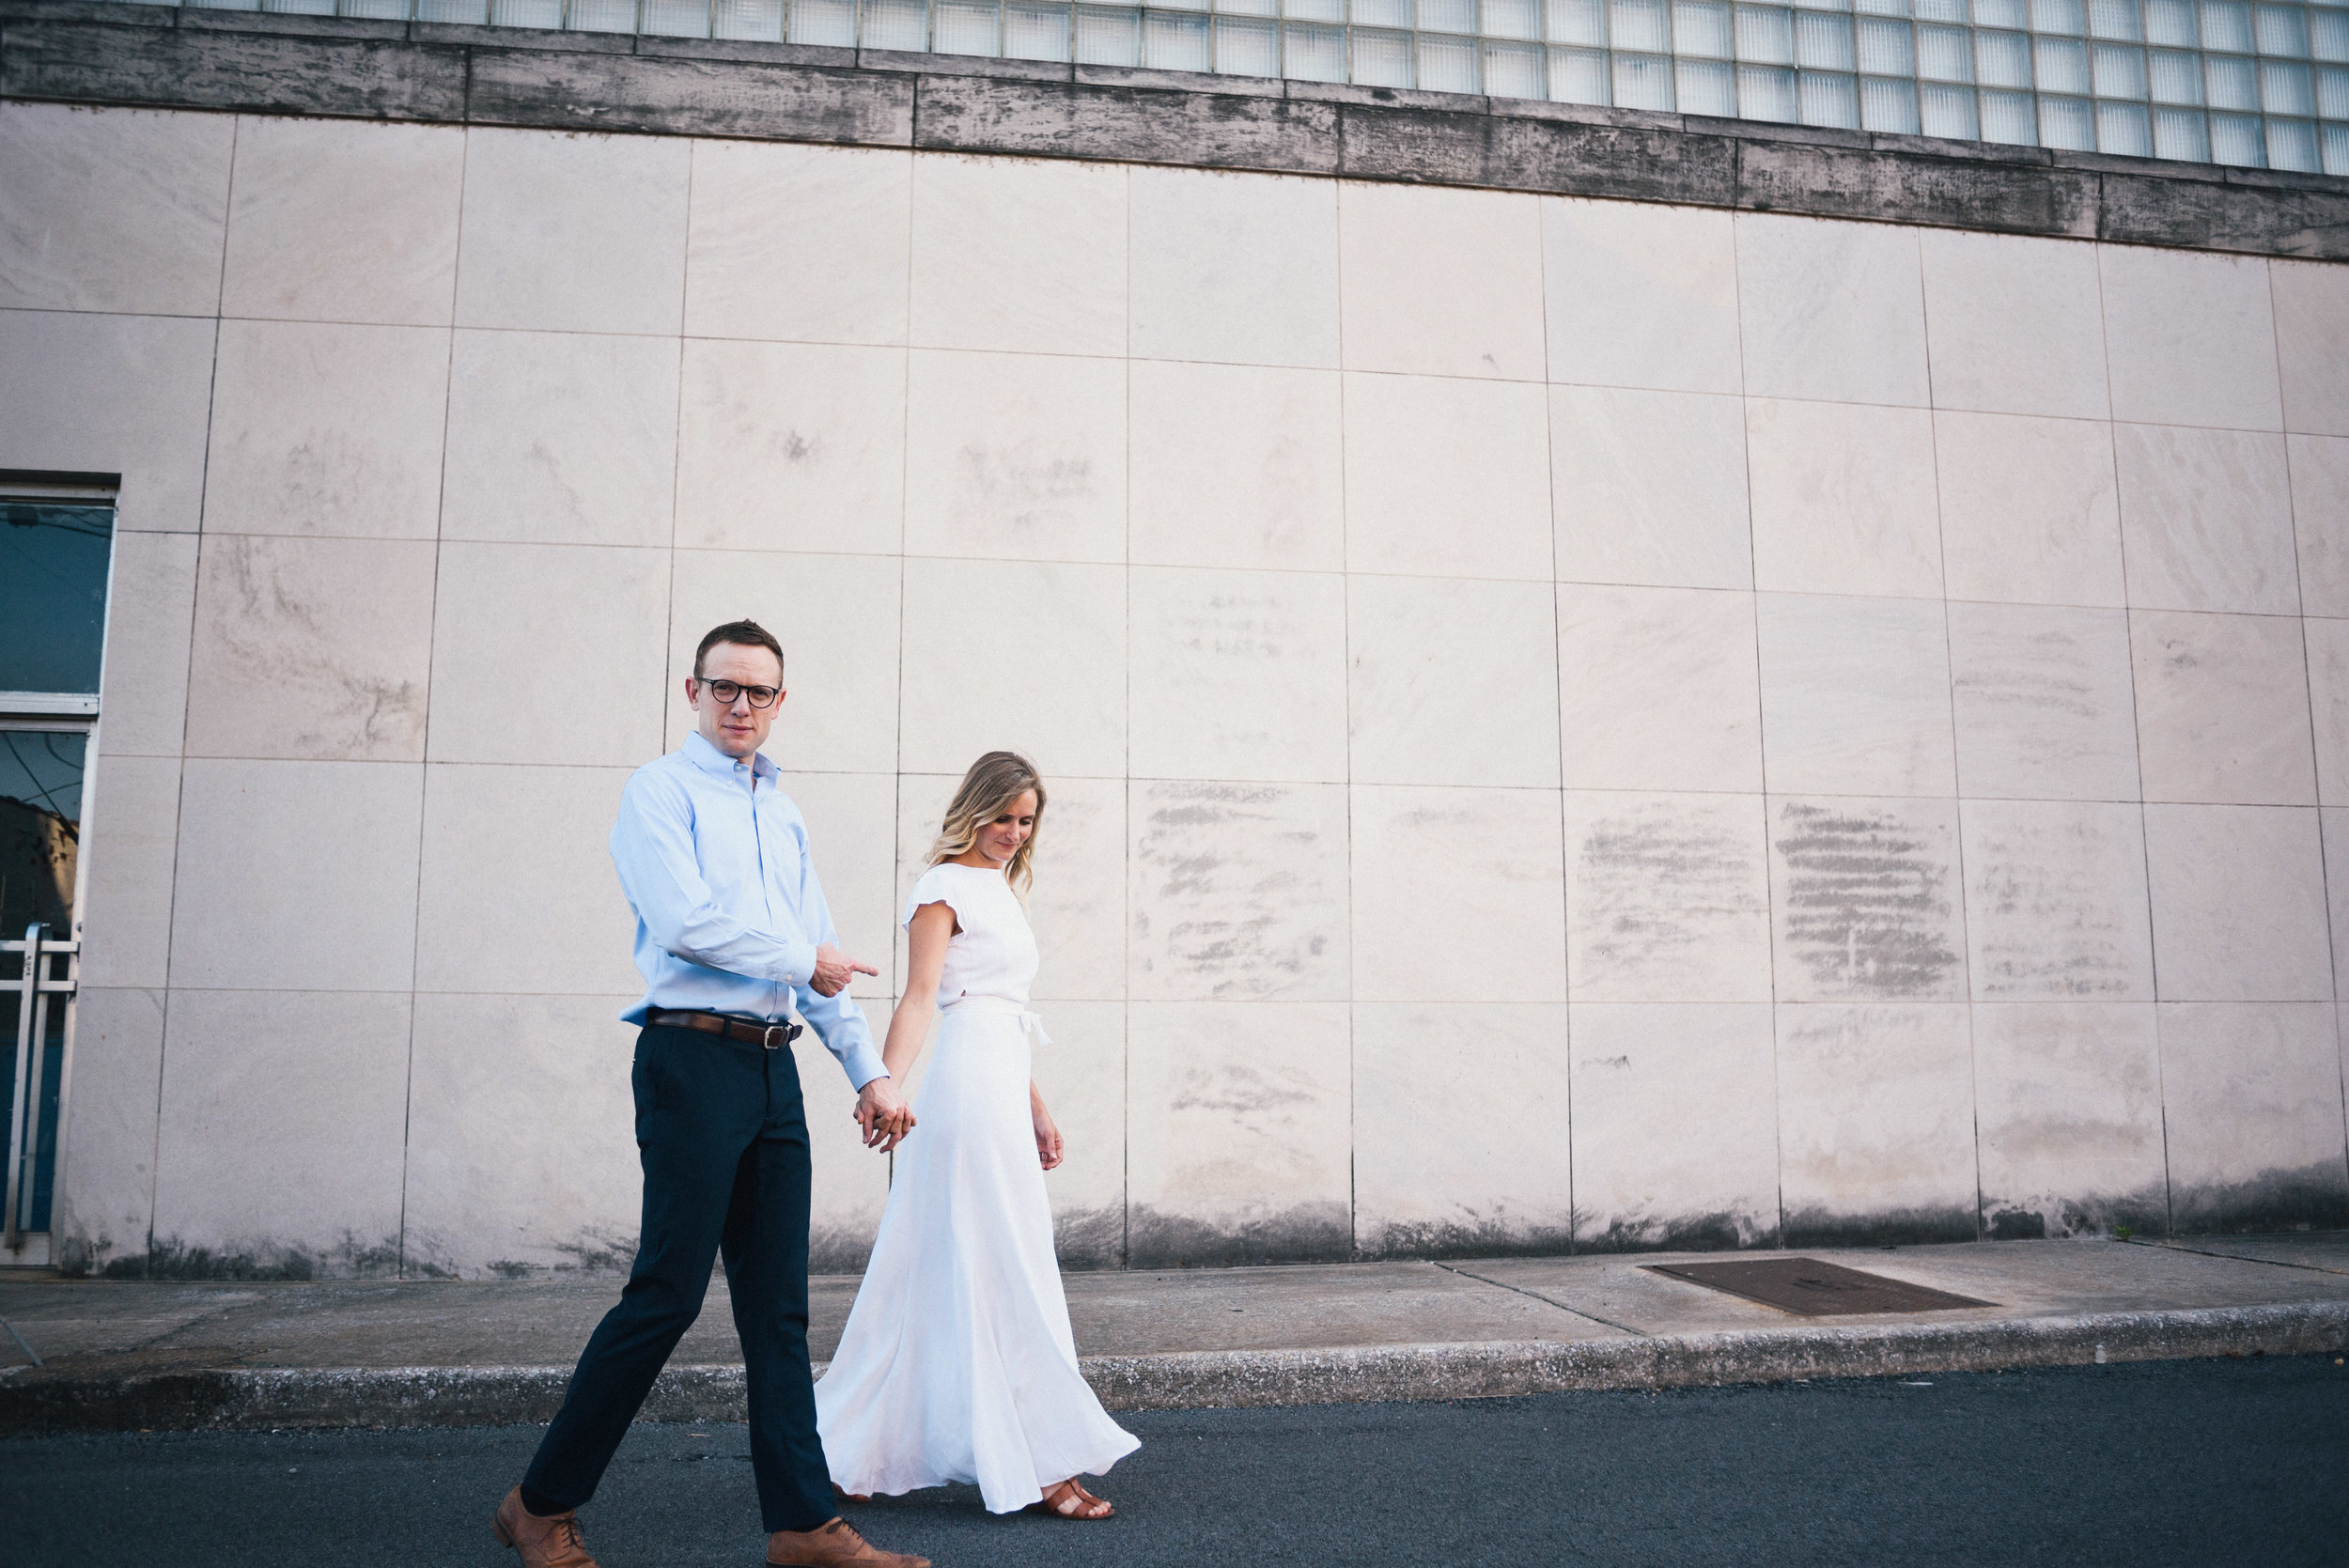 taryn-and-jackson-engagement-save-the-date (12 of 219).jpg